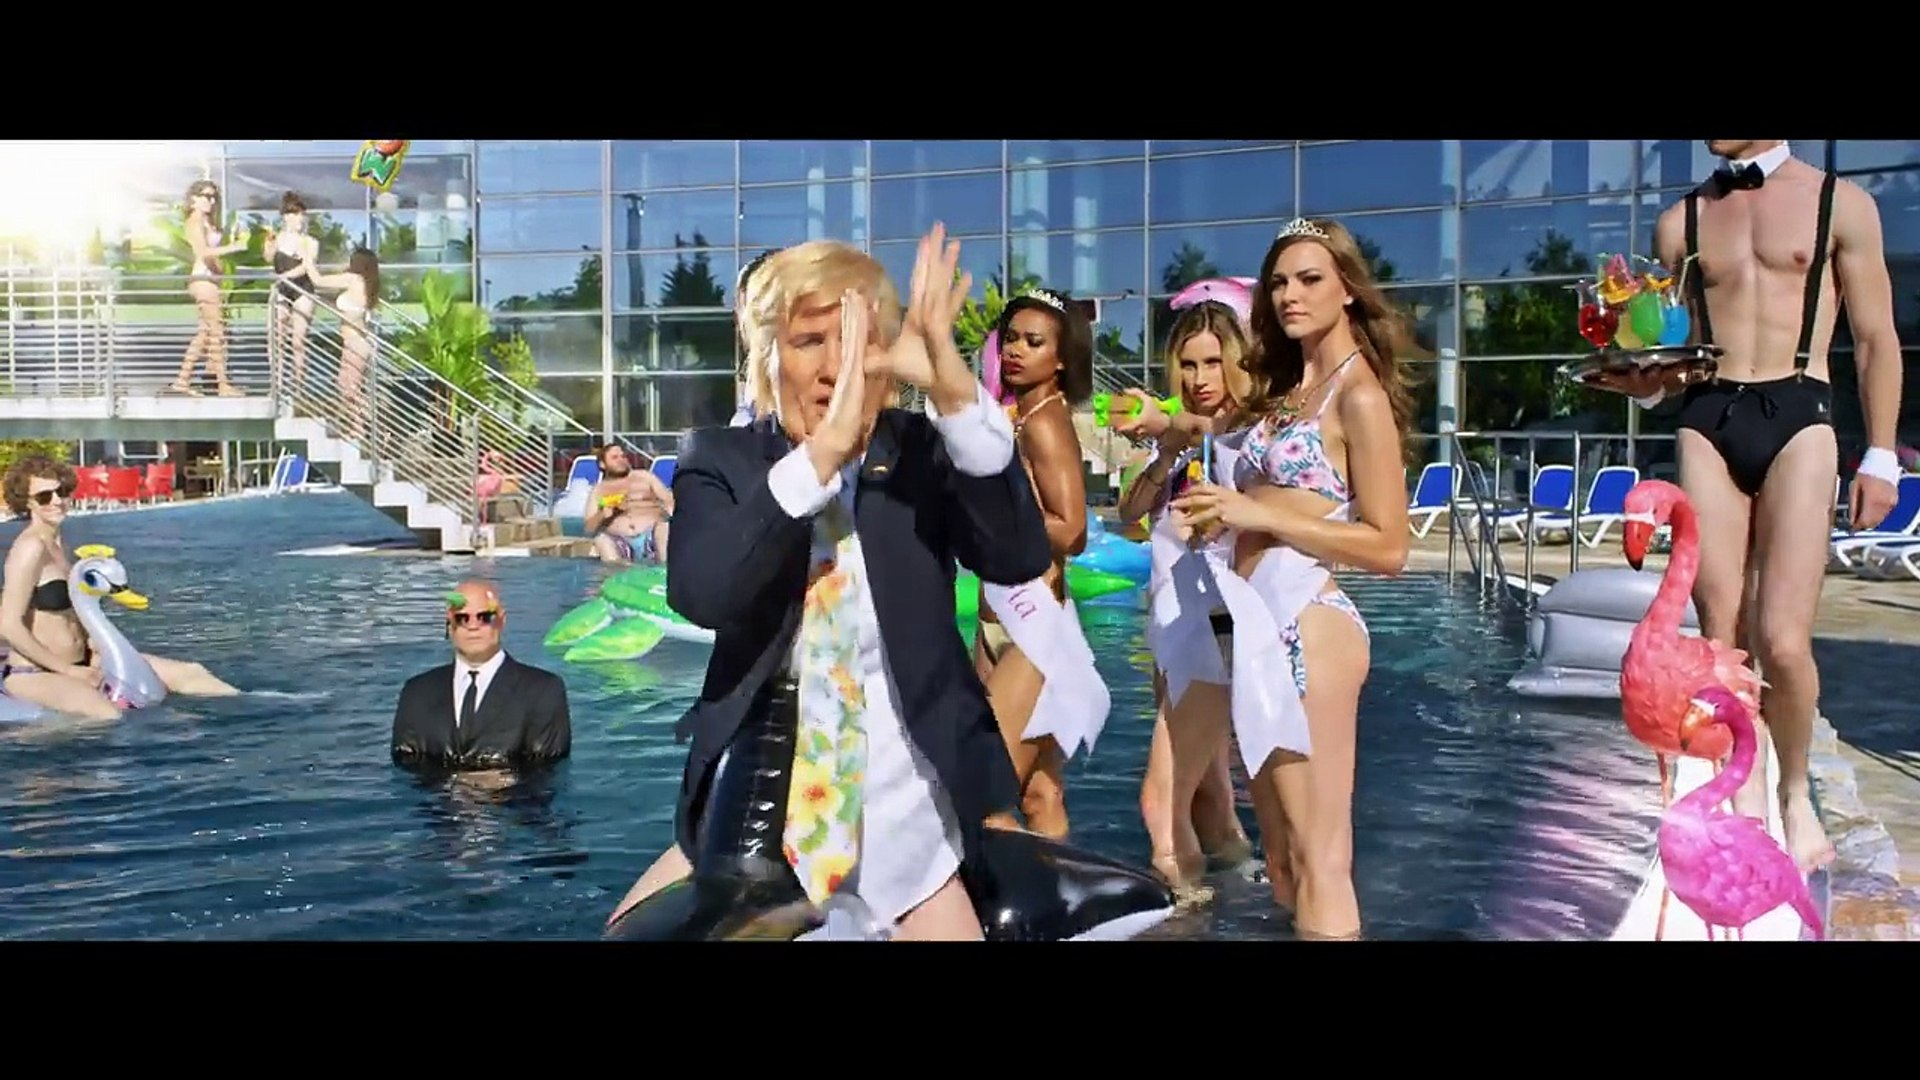 Klemen Slakonja as Donald Trump ft. Melania Trump Golden Dump (The Trump Hump)/#TheMocking